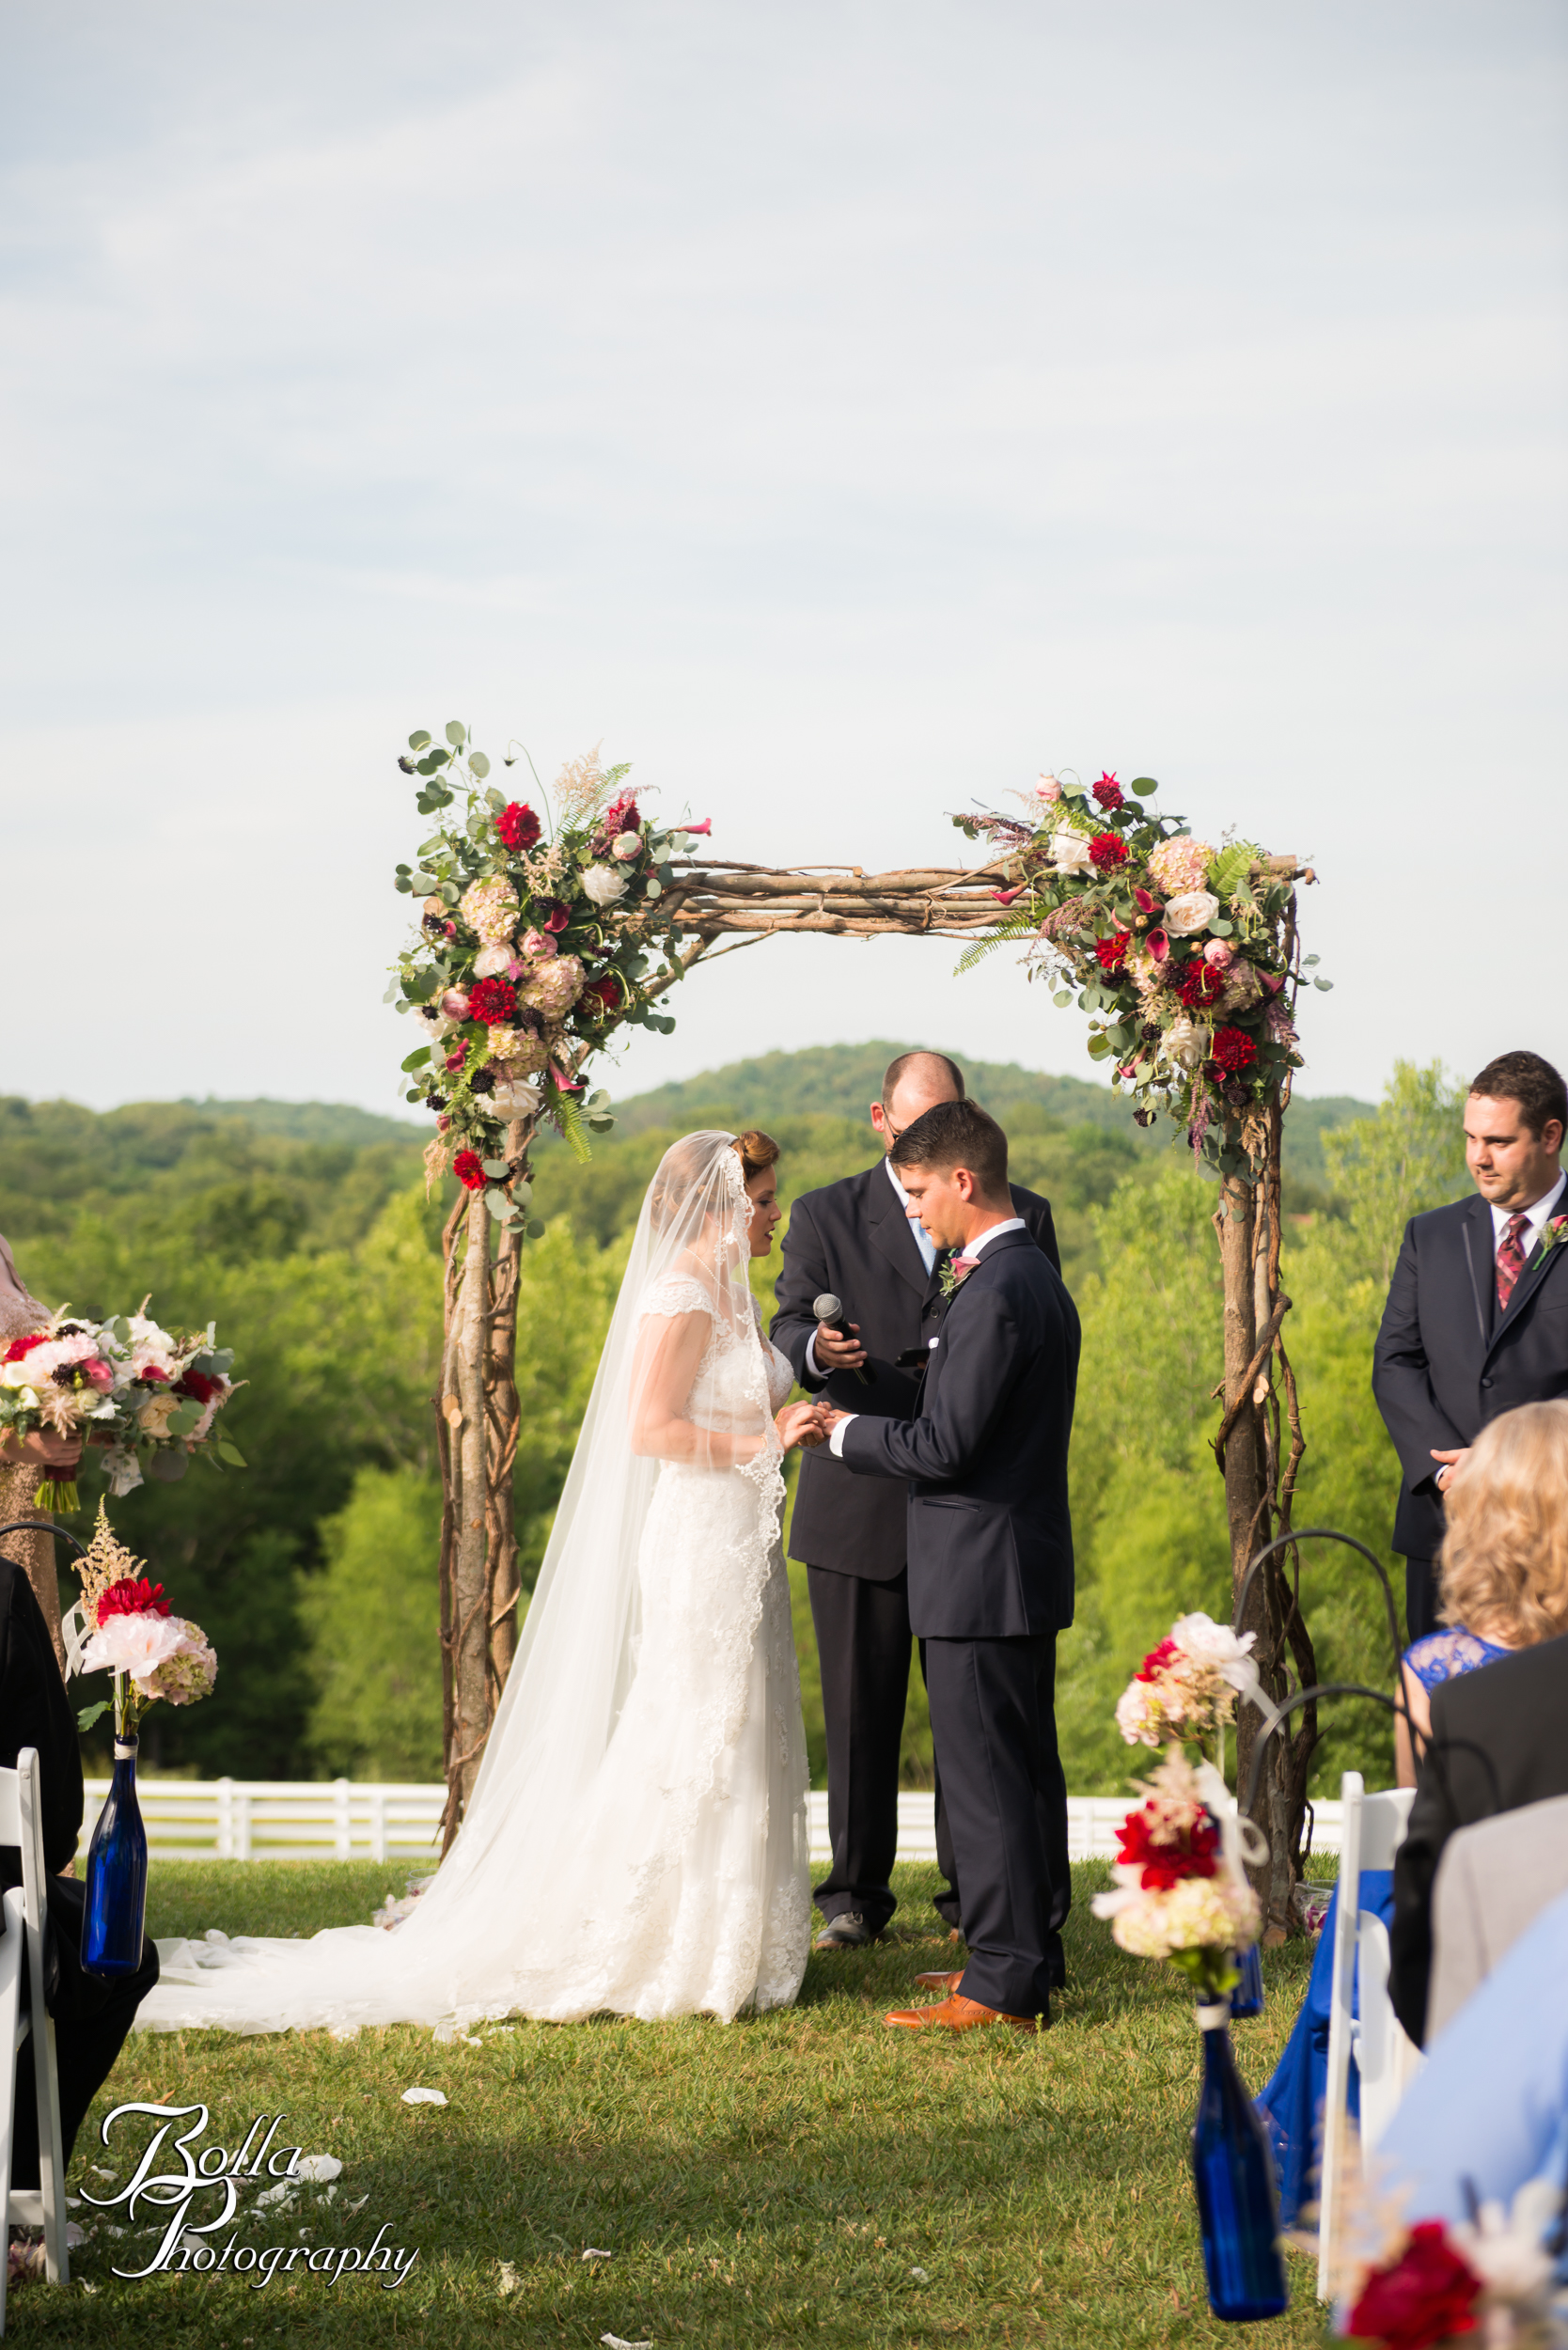 Bolla_photography_edwardsville_wedding_photographer_st_louis_weddings_Chaumette_winery_Mikusch-0407.jpg